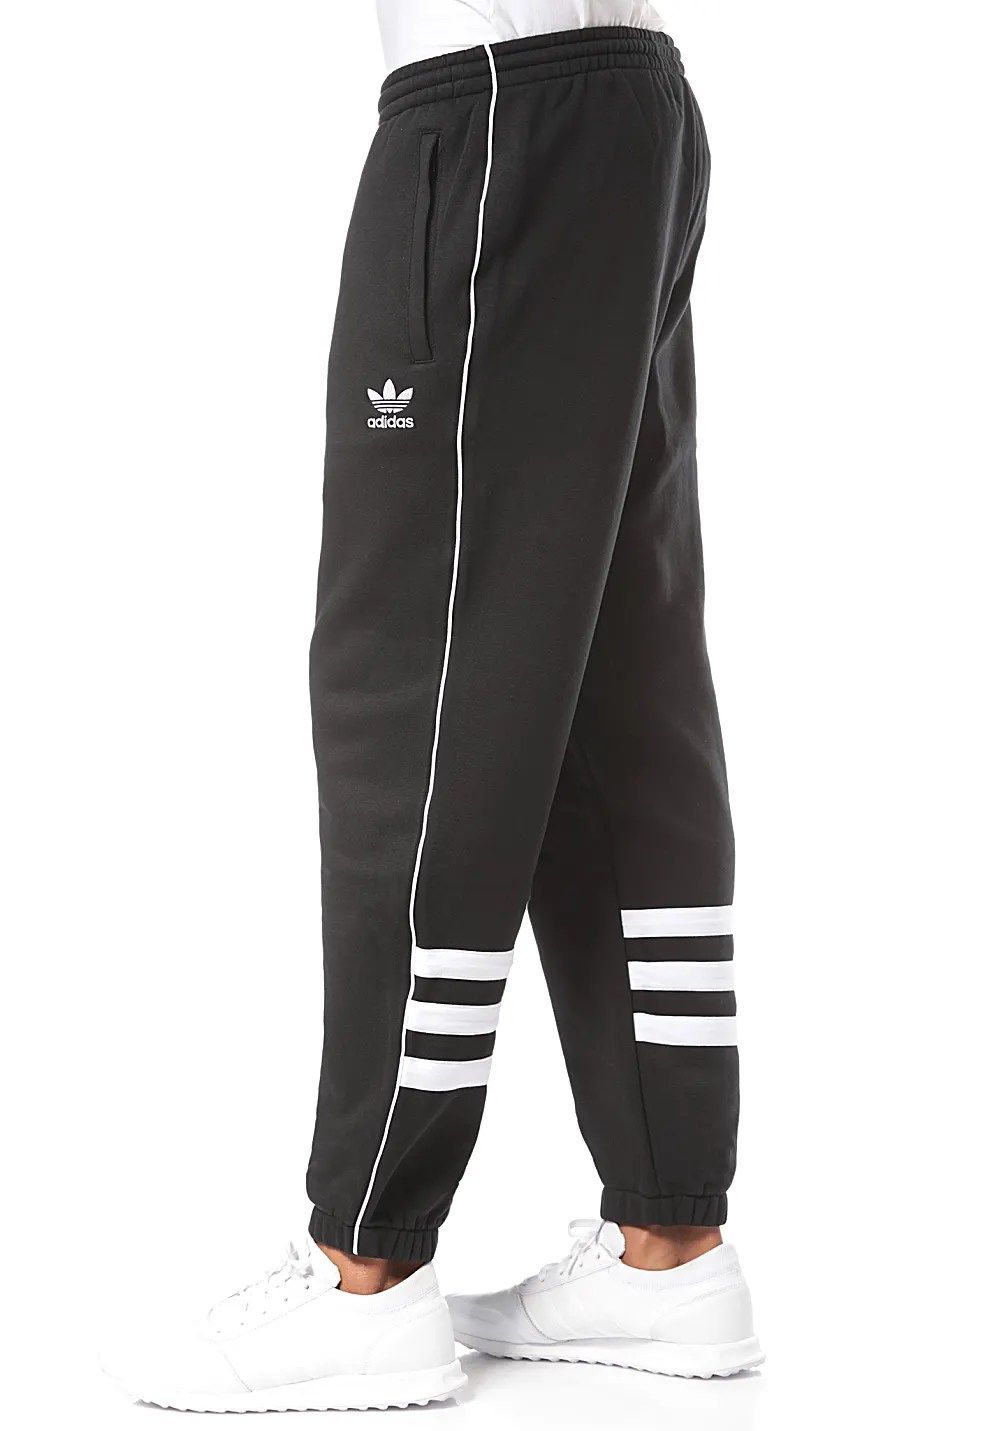 Adidas Jogginghose Schwarz Herren Adidas Originals Authentic Trainingshose Für Herren Schwarz